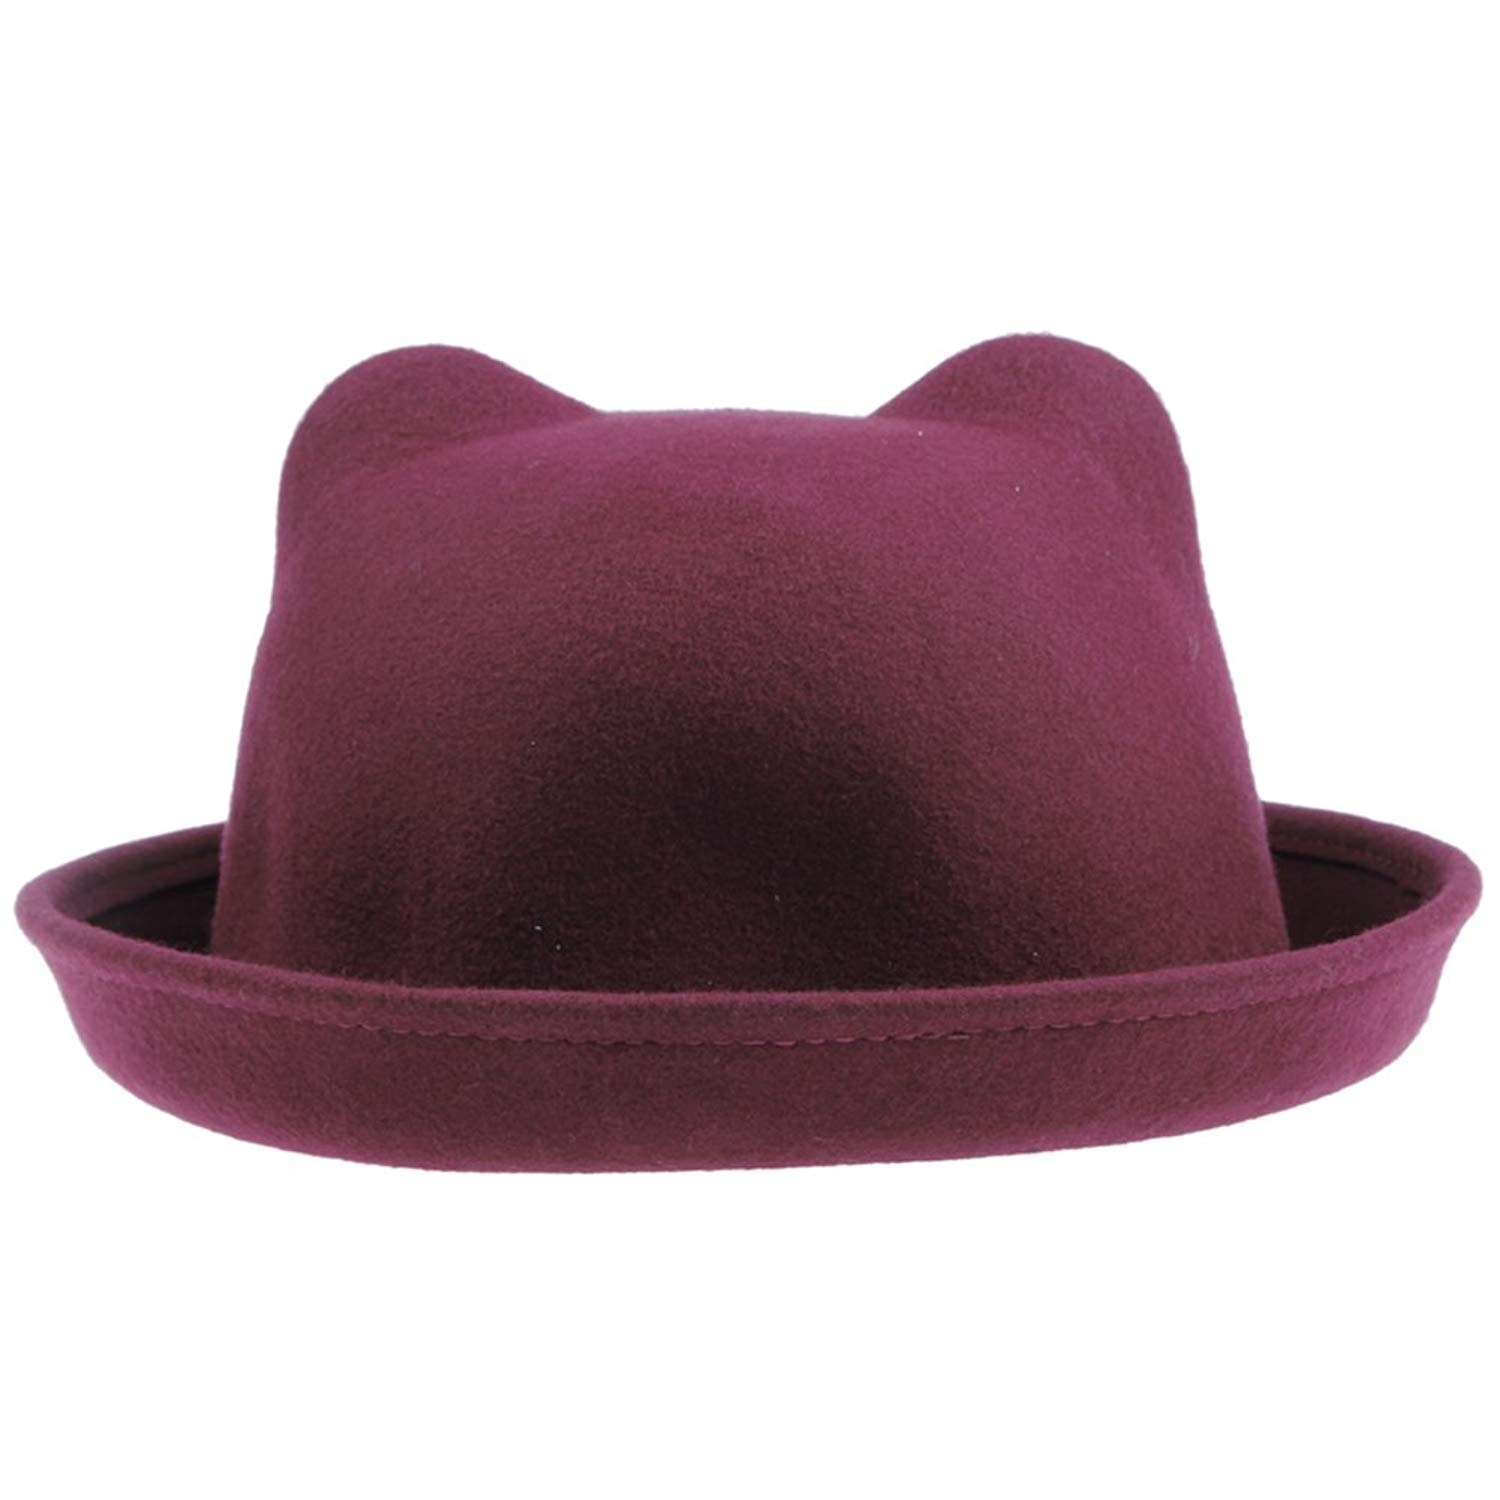 b47ef6e9a9aef Get Quotations · JTC Ear Hat New Womens Wool Party Hat Billycock Cloche Derby  Hat Wine Red